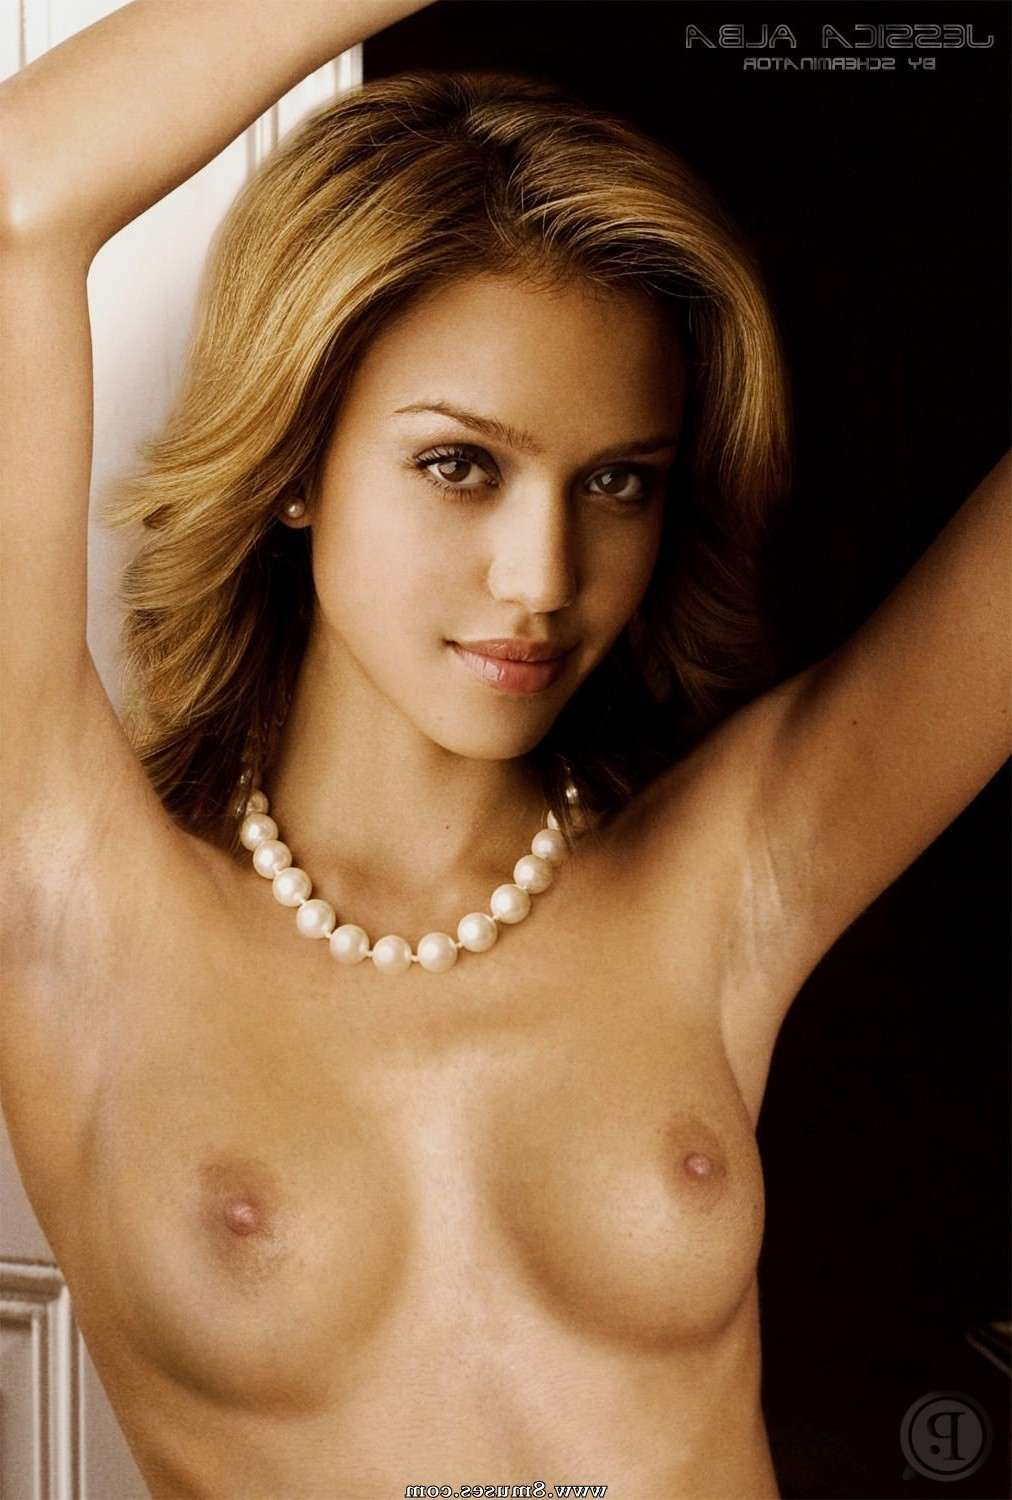 Fake-Celebrities-Sex-Pictures/Jessica-Alba Jessica_Alba__8muses_-_Sex_and_Porn_Comics_310.jpg